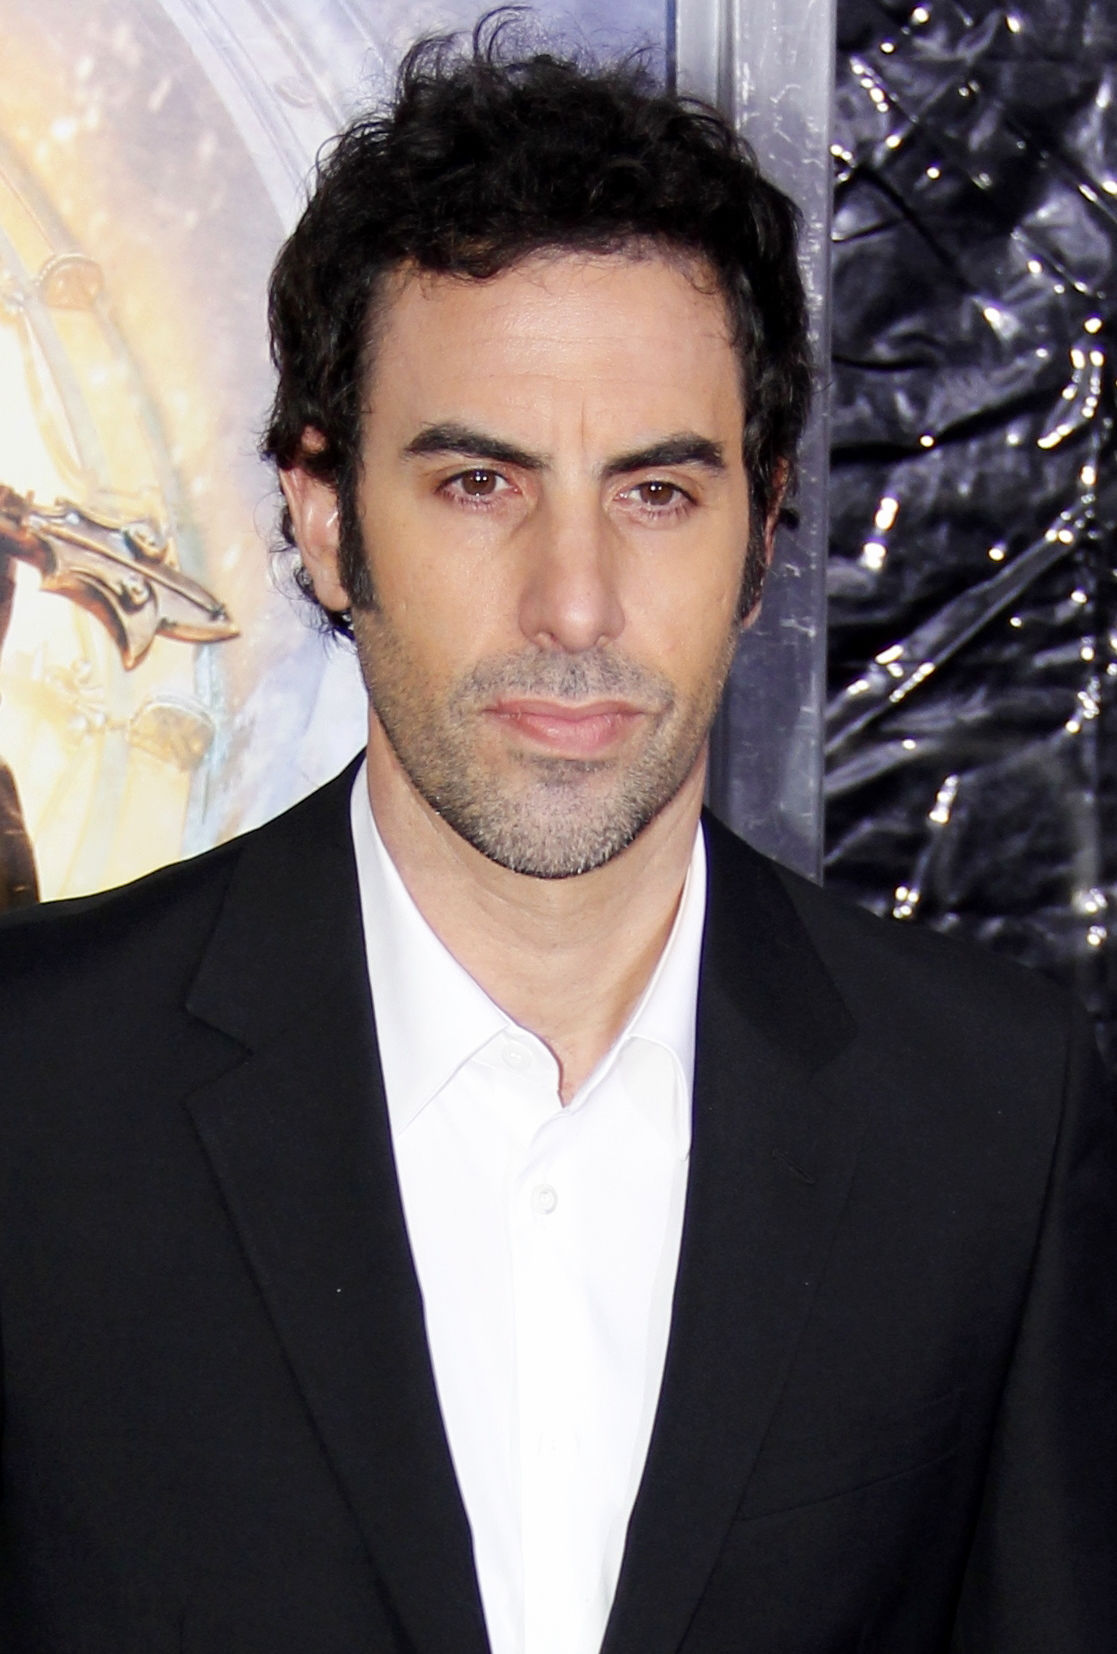 Photo of Sacha Baron Cohen: English stand-up comedian, writer, actor, and voice actor